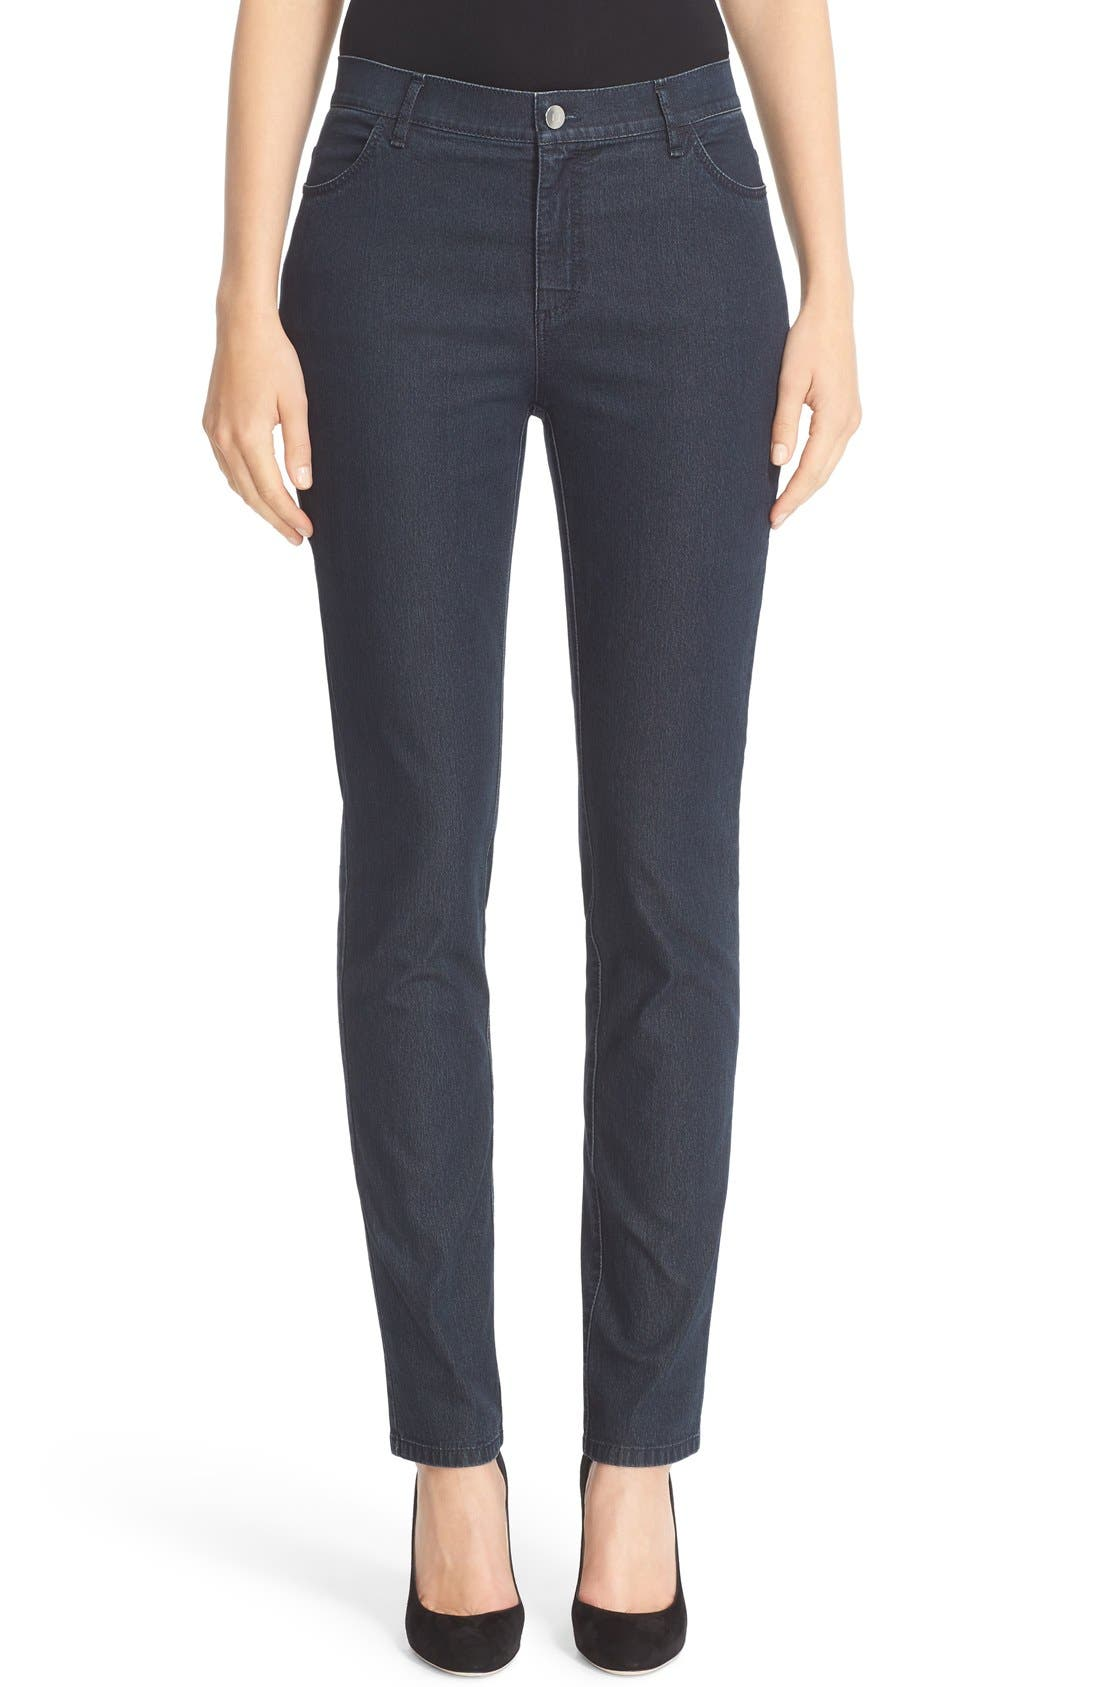 Lafayette 148 New York 'Primo Denim' Curvy Fit Slim Leg Jeans